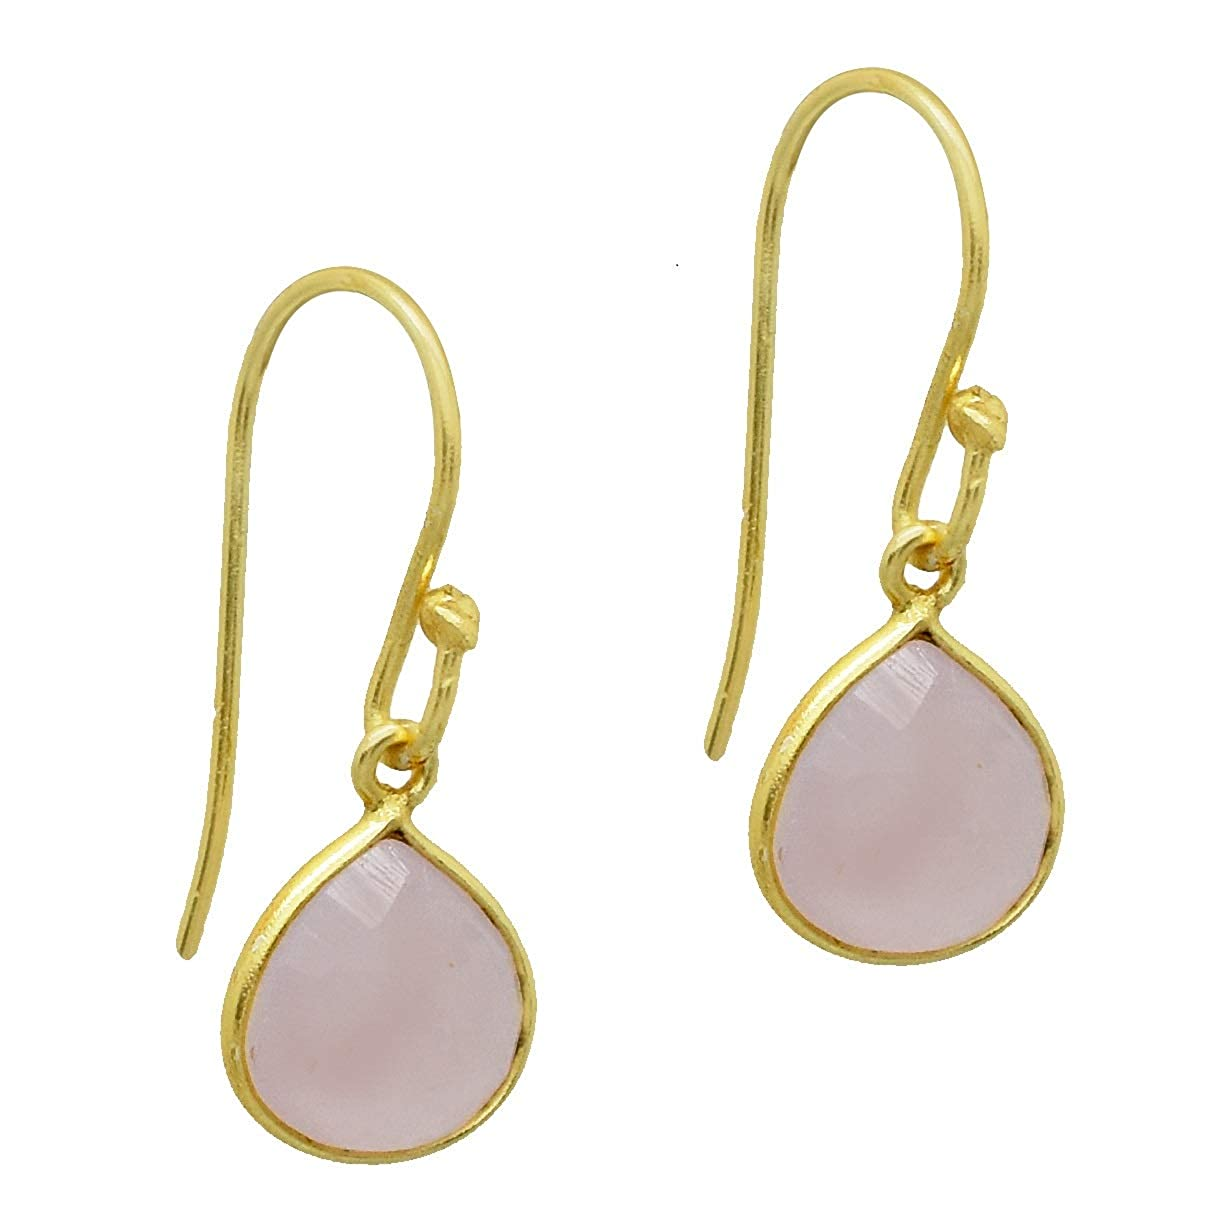 The V Collection earrings yellow gold plated faceted rose quartz tabiz dangling earrings for women and girls